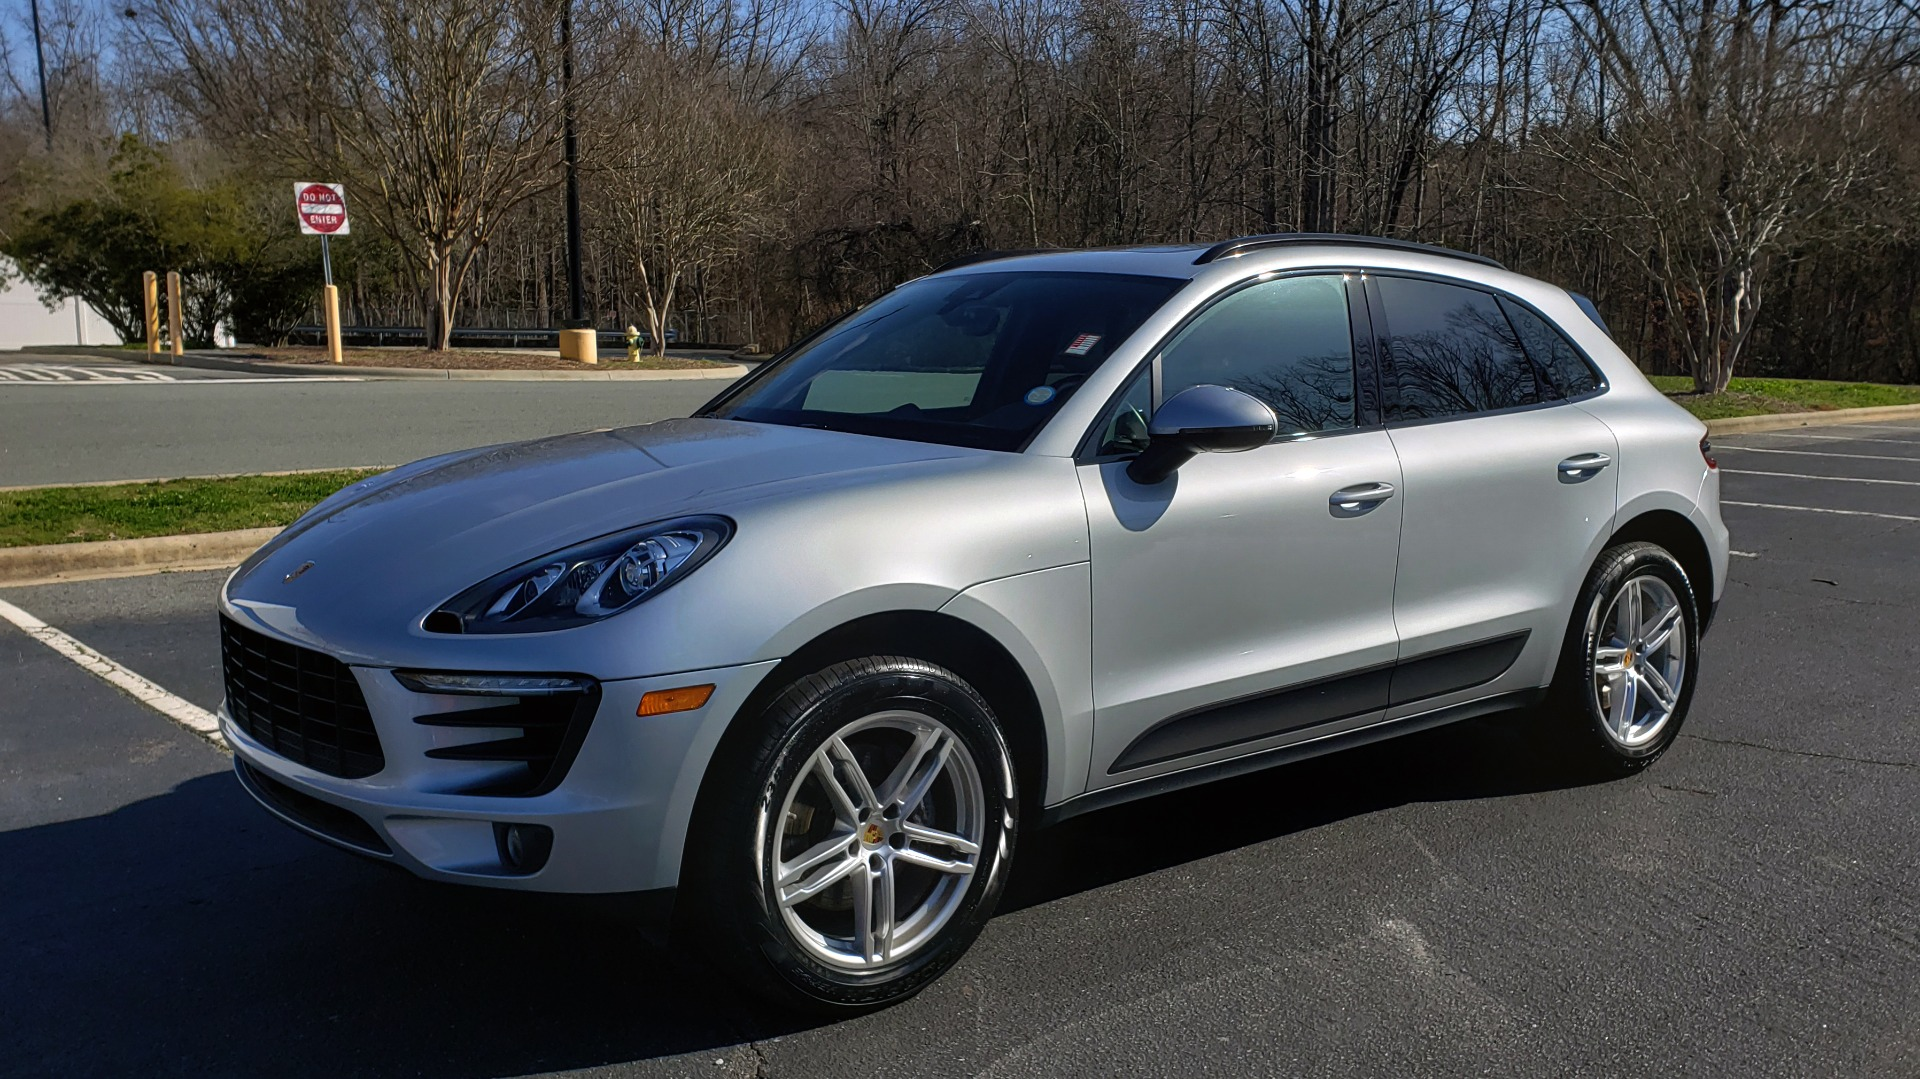 Used 2018 Porsche MACAN AWD / PDK / NAV / PANO-ROOF / BOSE / REARVIEW / LCA for sale Sold at Formula Imports in Charlotte NC 28227 1